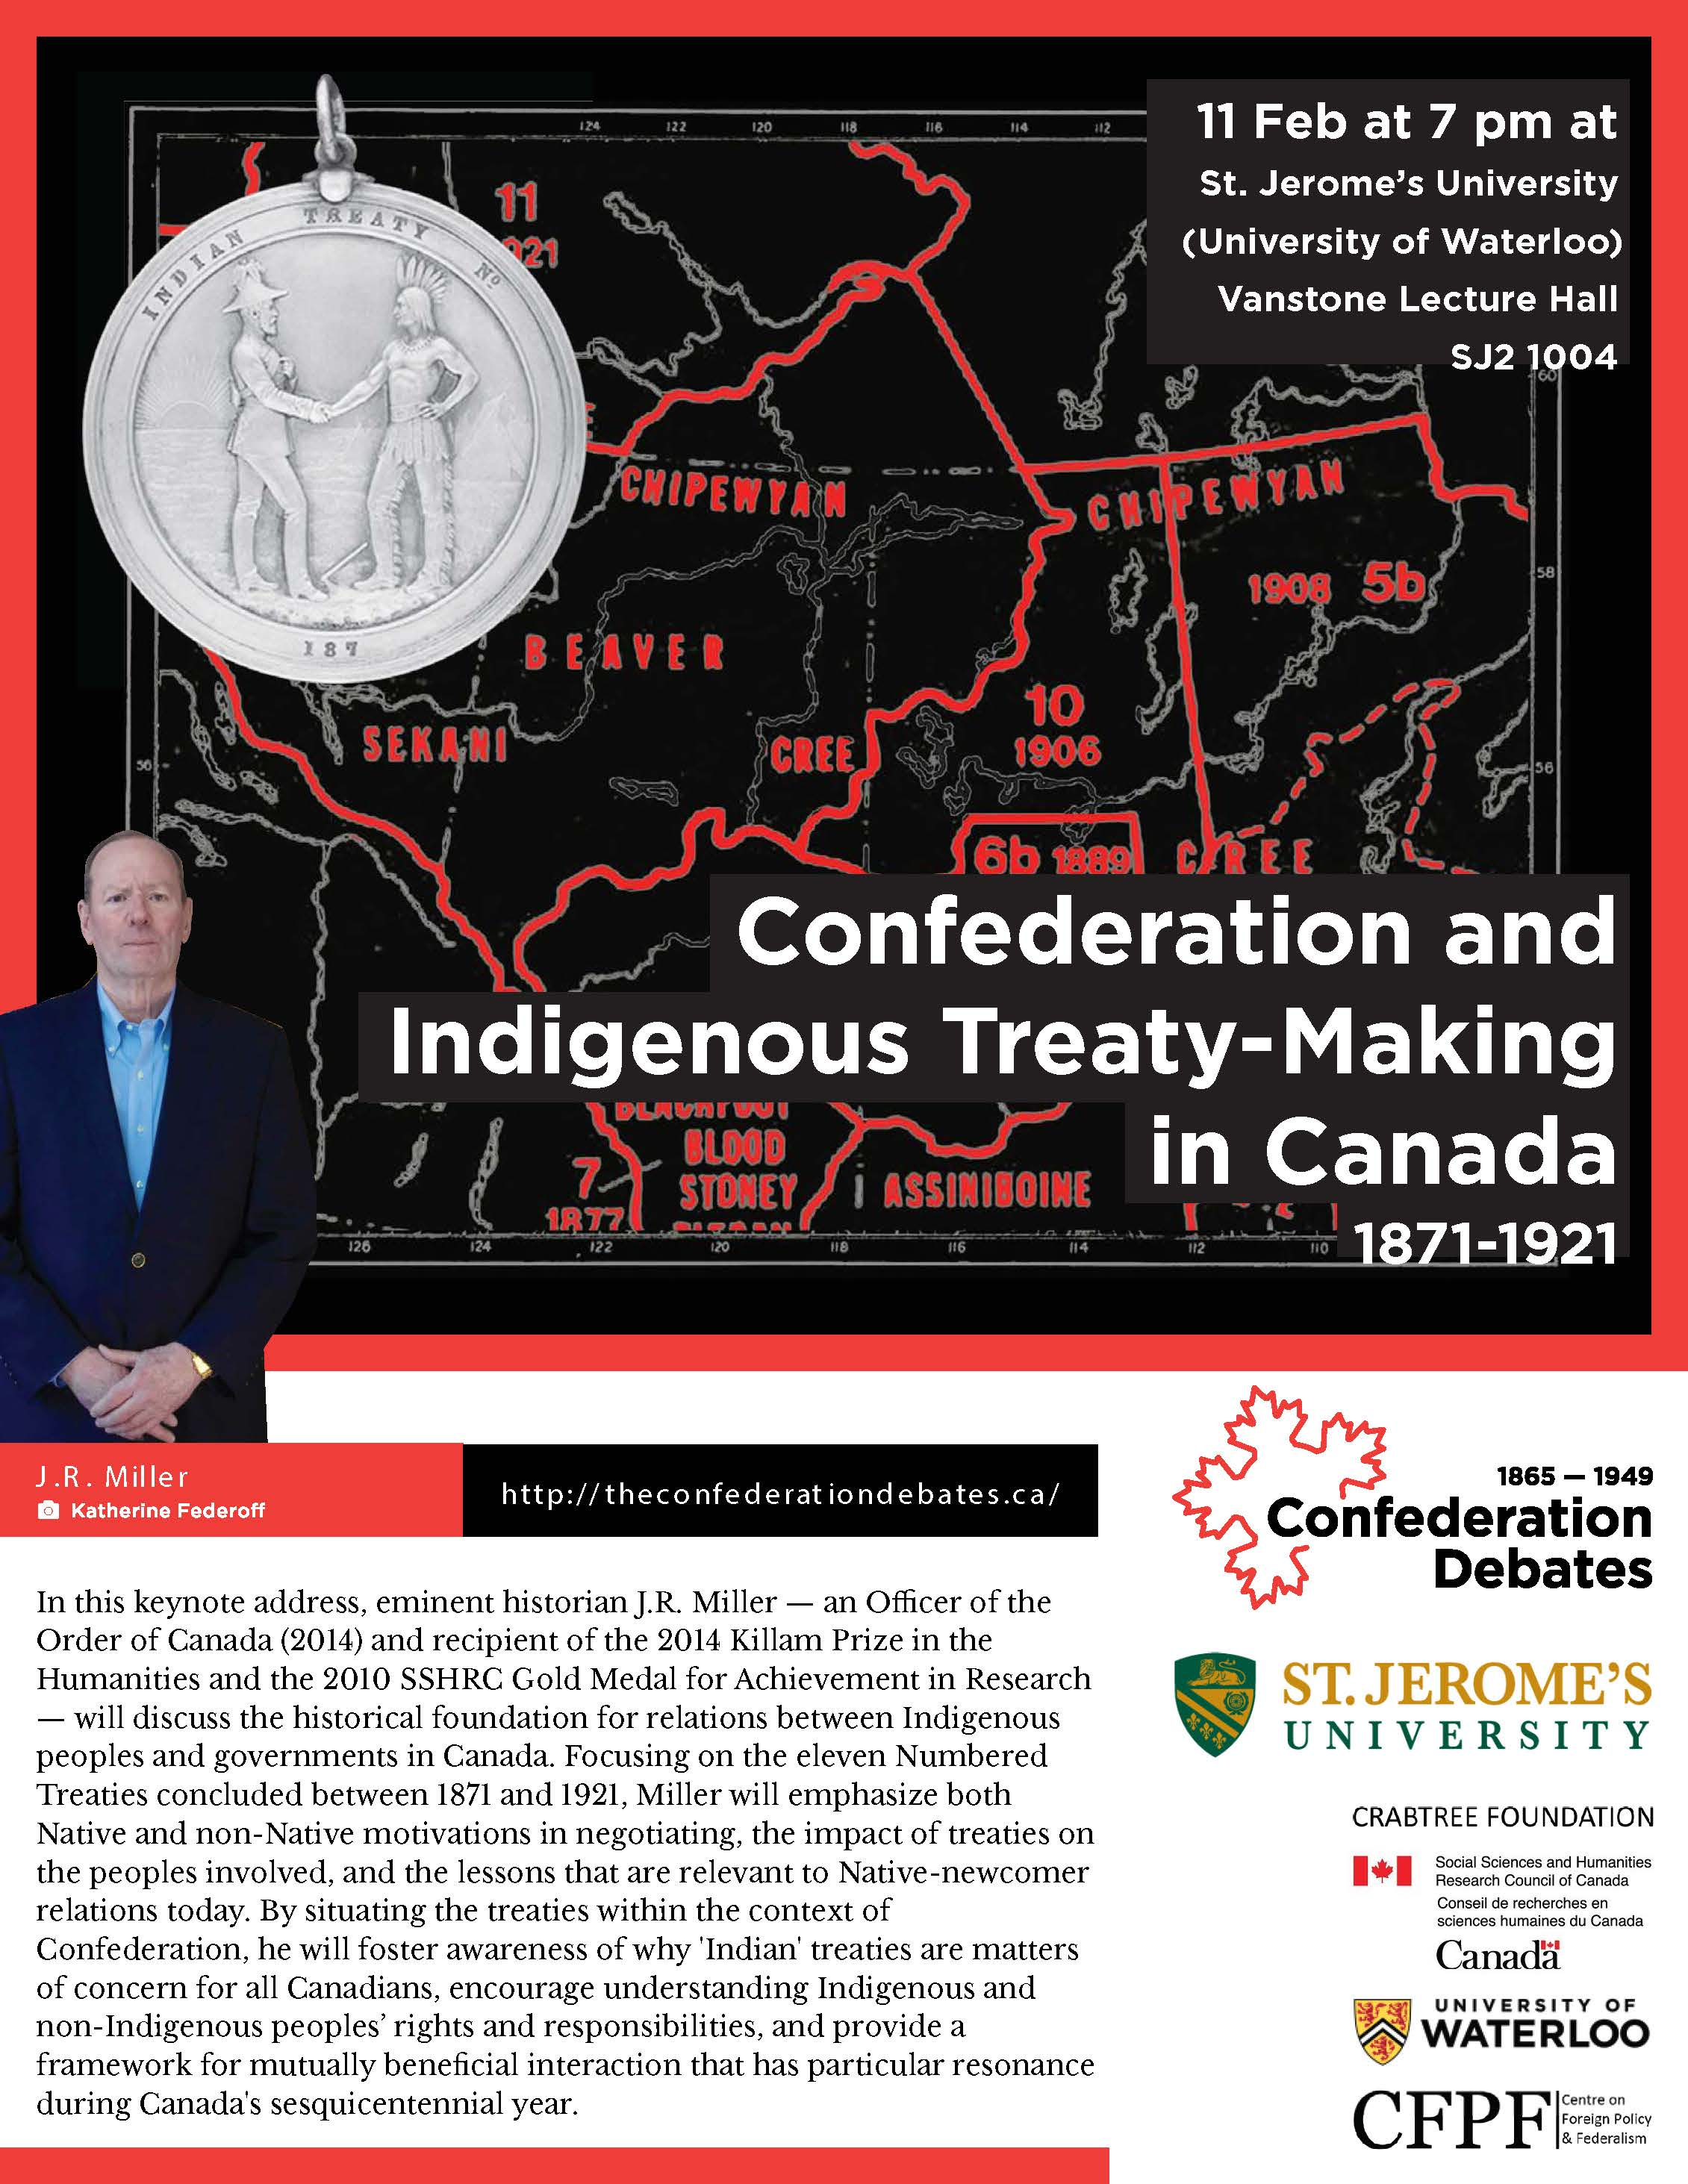 Conferderation and indigenous treaty-making canada